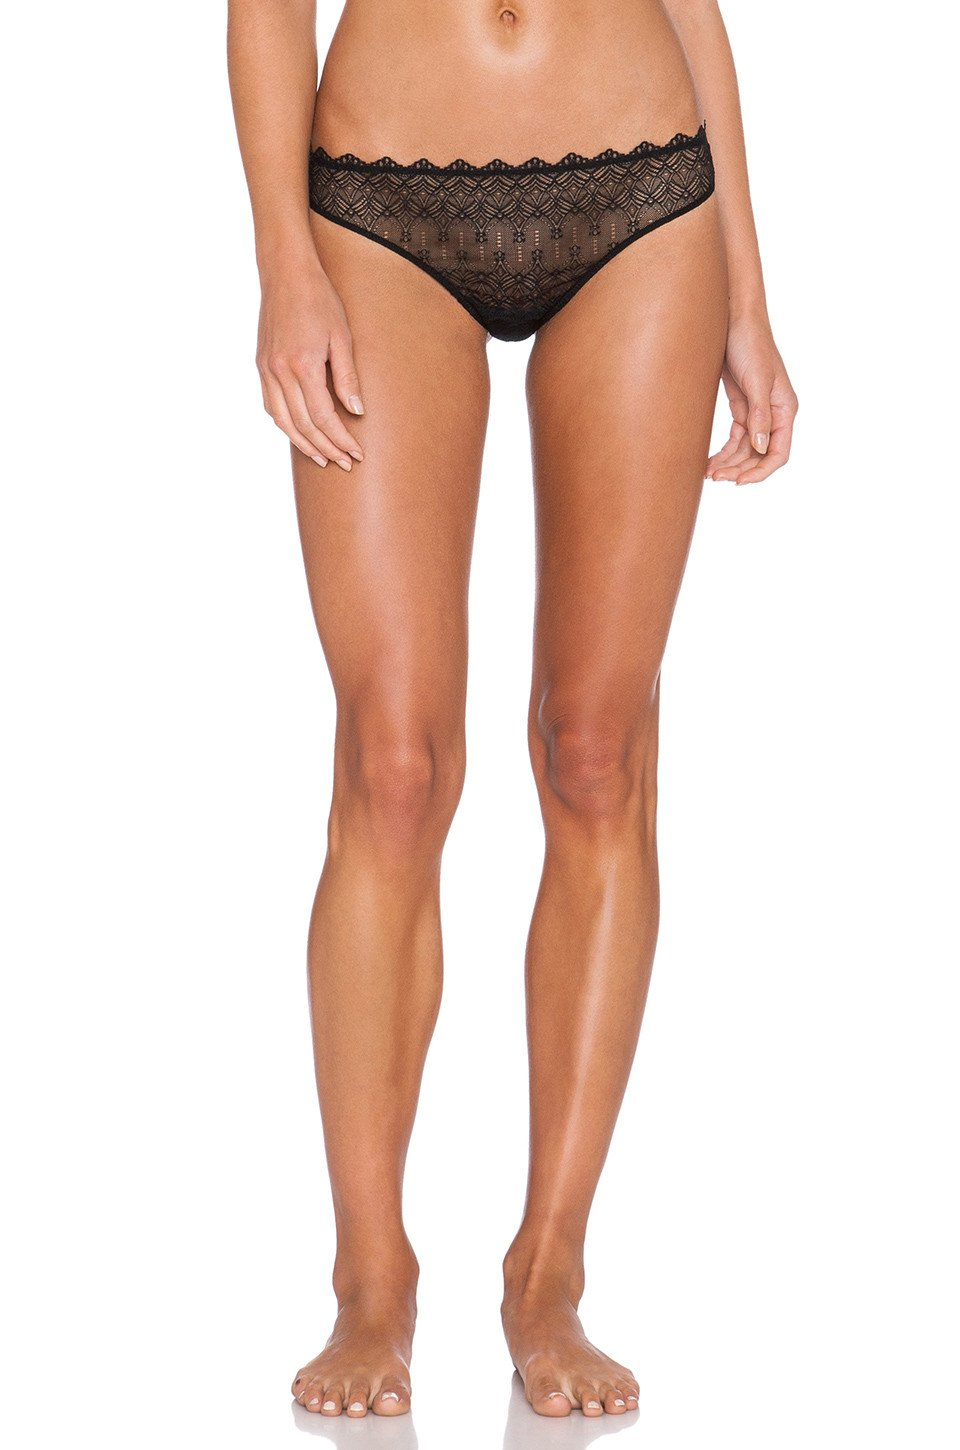 Papyrus Low Rise Thong - Kustom Label - 1